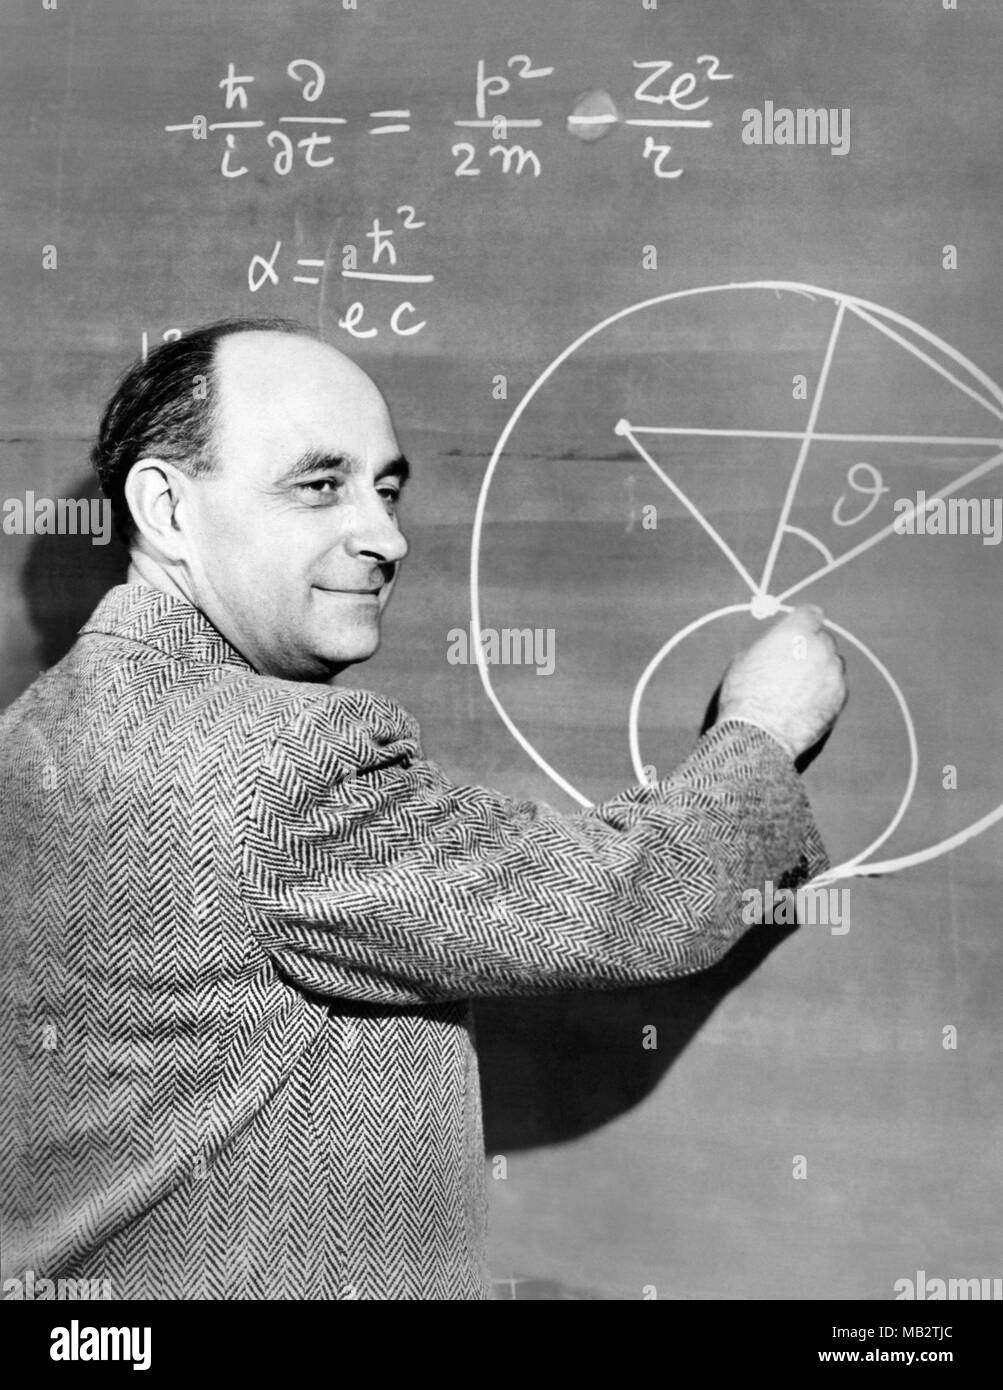 Enrico Fermi (1901–1954), Italian-American physicist and pioneer in nuclear fission, demonstates a physics equation on a chalkboard, c1950. Fermi worked on the Manhattan Project during World War II and made significant contributions to the development of quantum theory, nuclear and particle physics, and statistical mechanics. Stock Photo